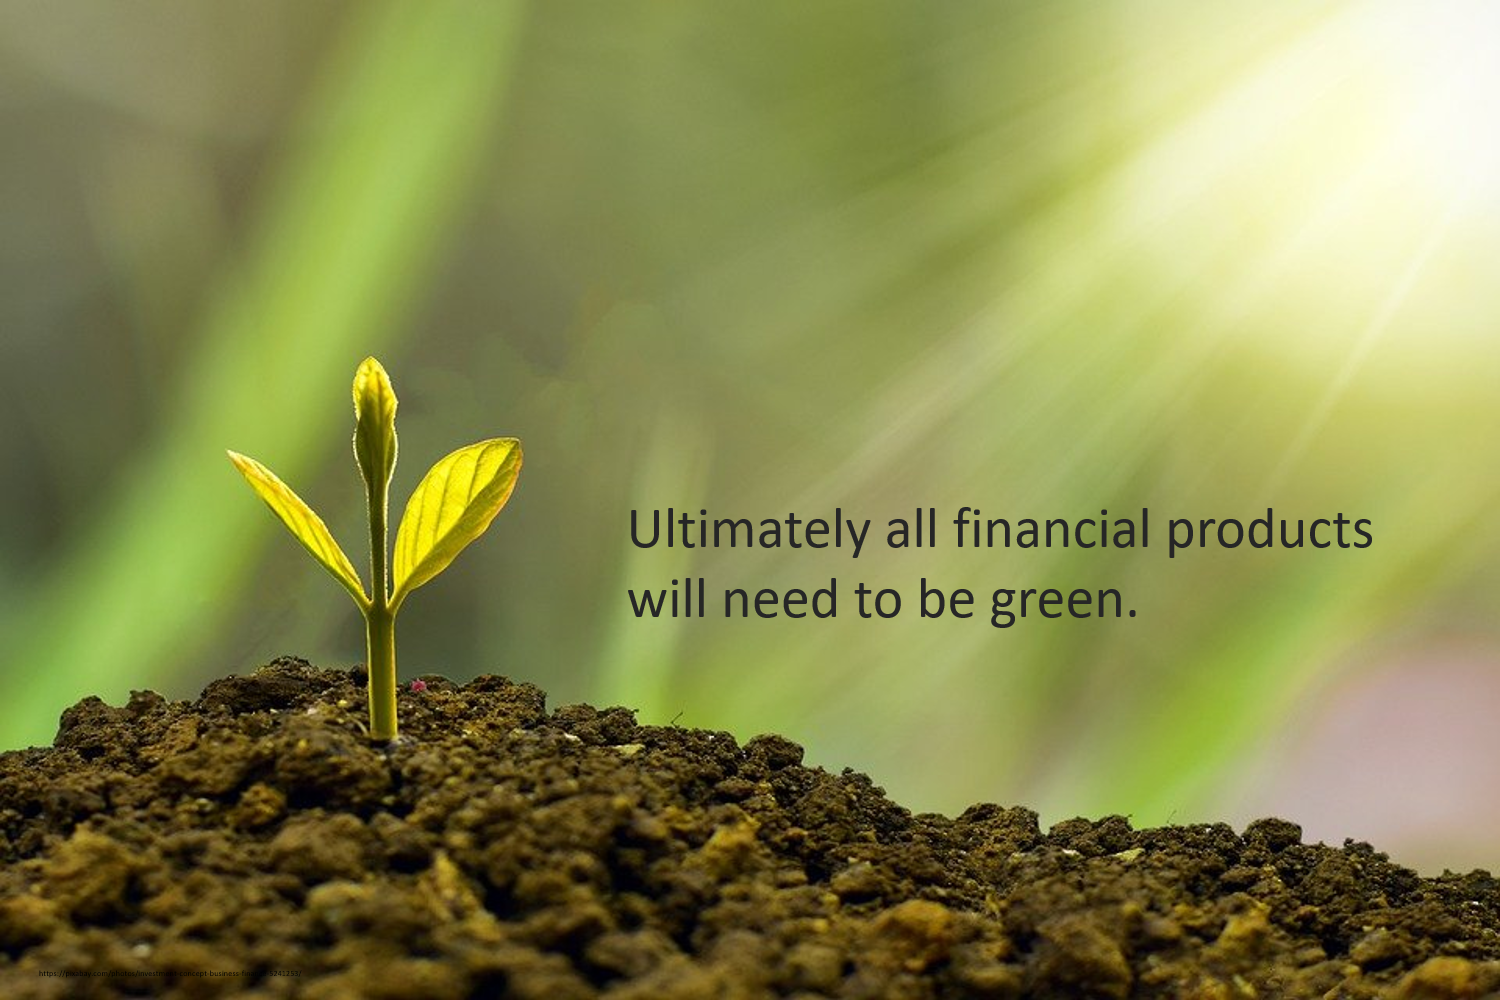 Ultimately all financial products will need to be green.